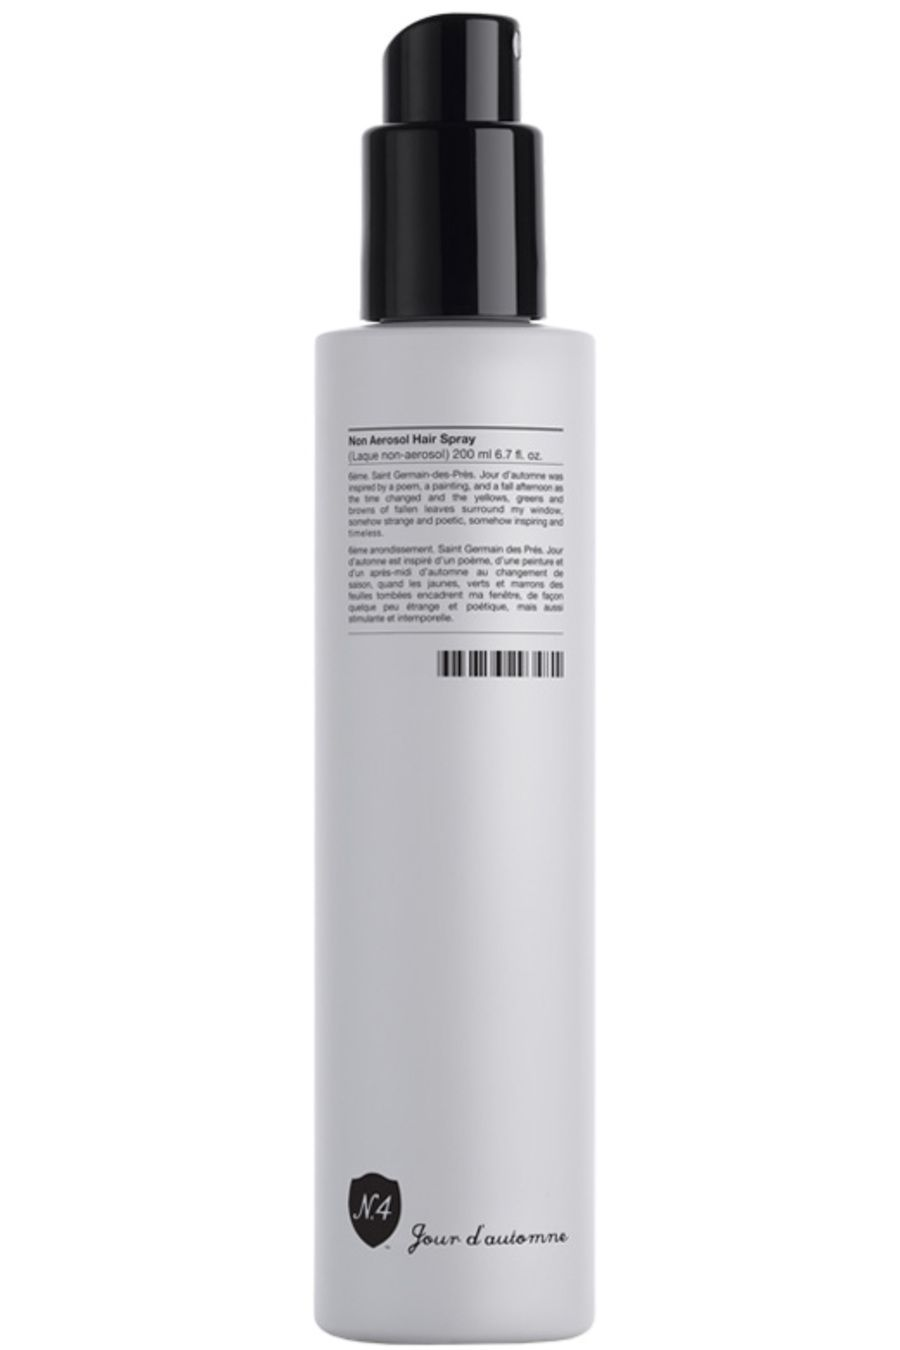 Blissim : Number 4 - Jour d'automne Non Aerosol Hair Spray - Jour d'automne Non Aerosol Hair Spray